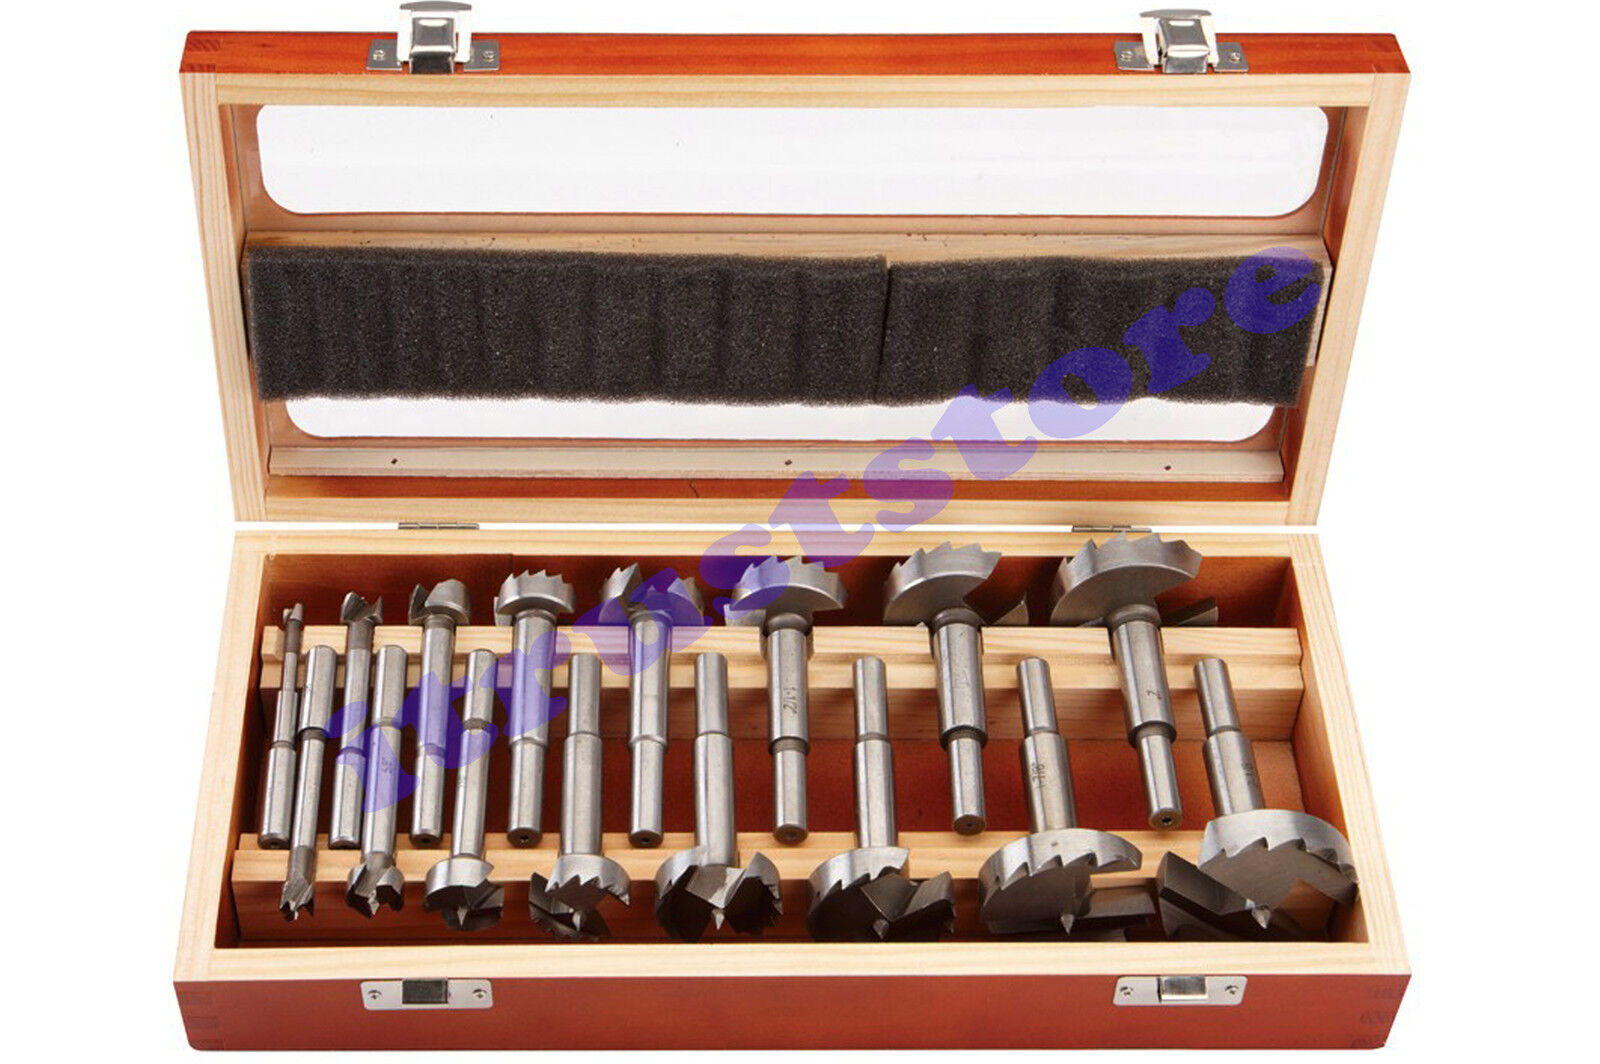 16 PC TIP FORSTNER WOOD BORING DRILL BIT TOOL FORSTENER SET FORESTNER DRILLING